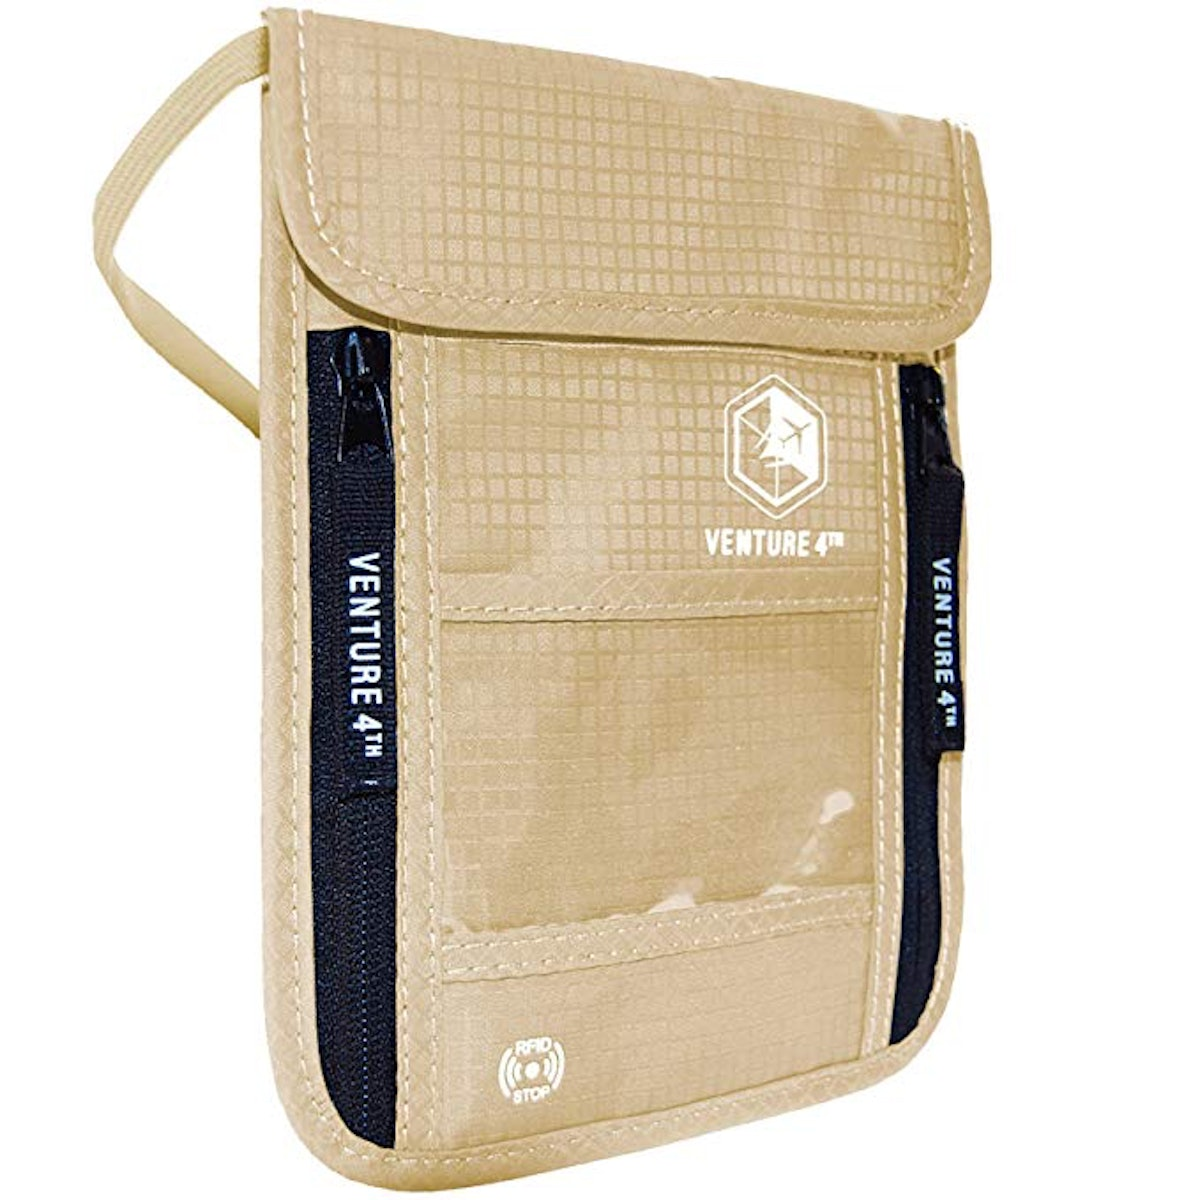 Venture 4th Travel Neck Pouch Wallet with RFID Blocking